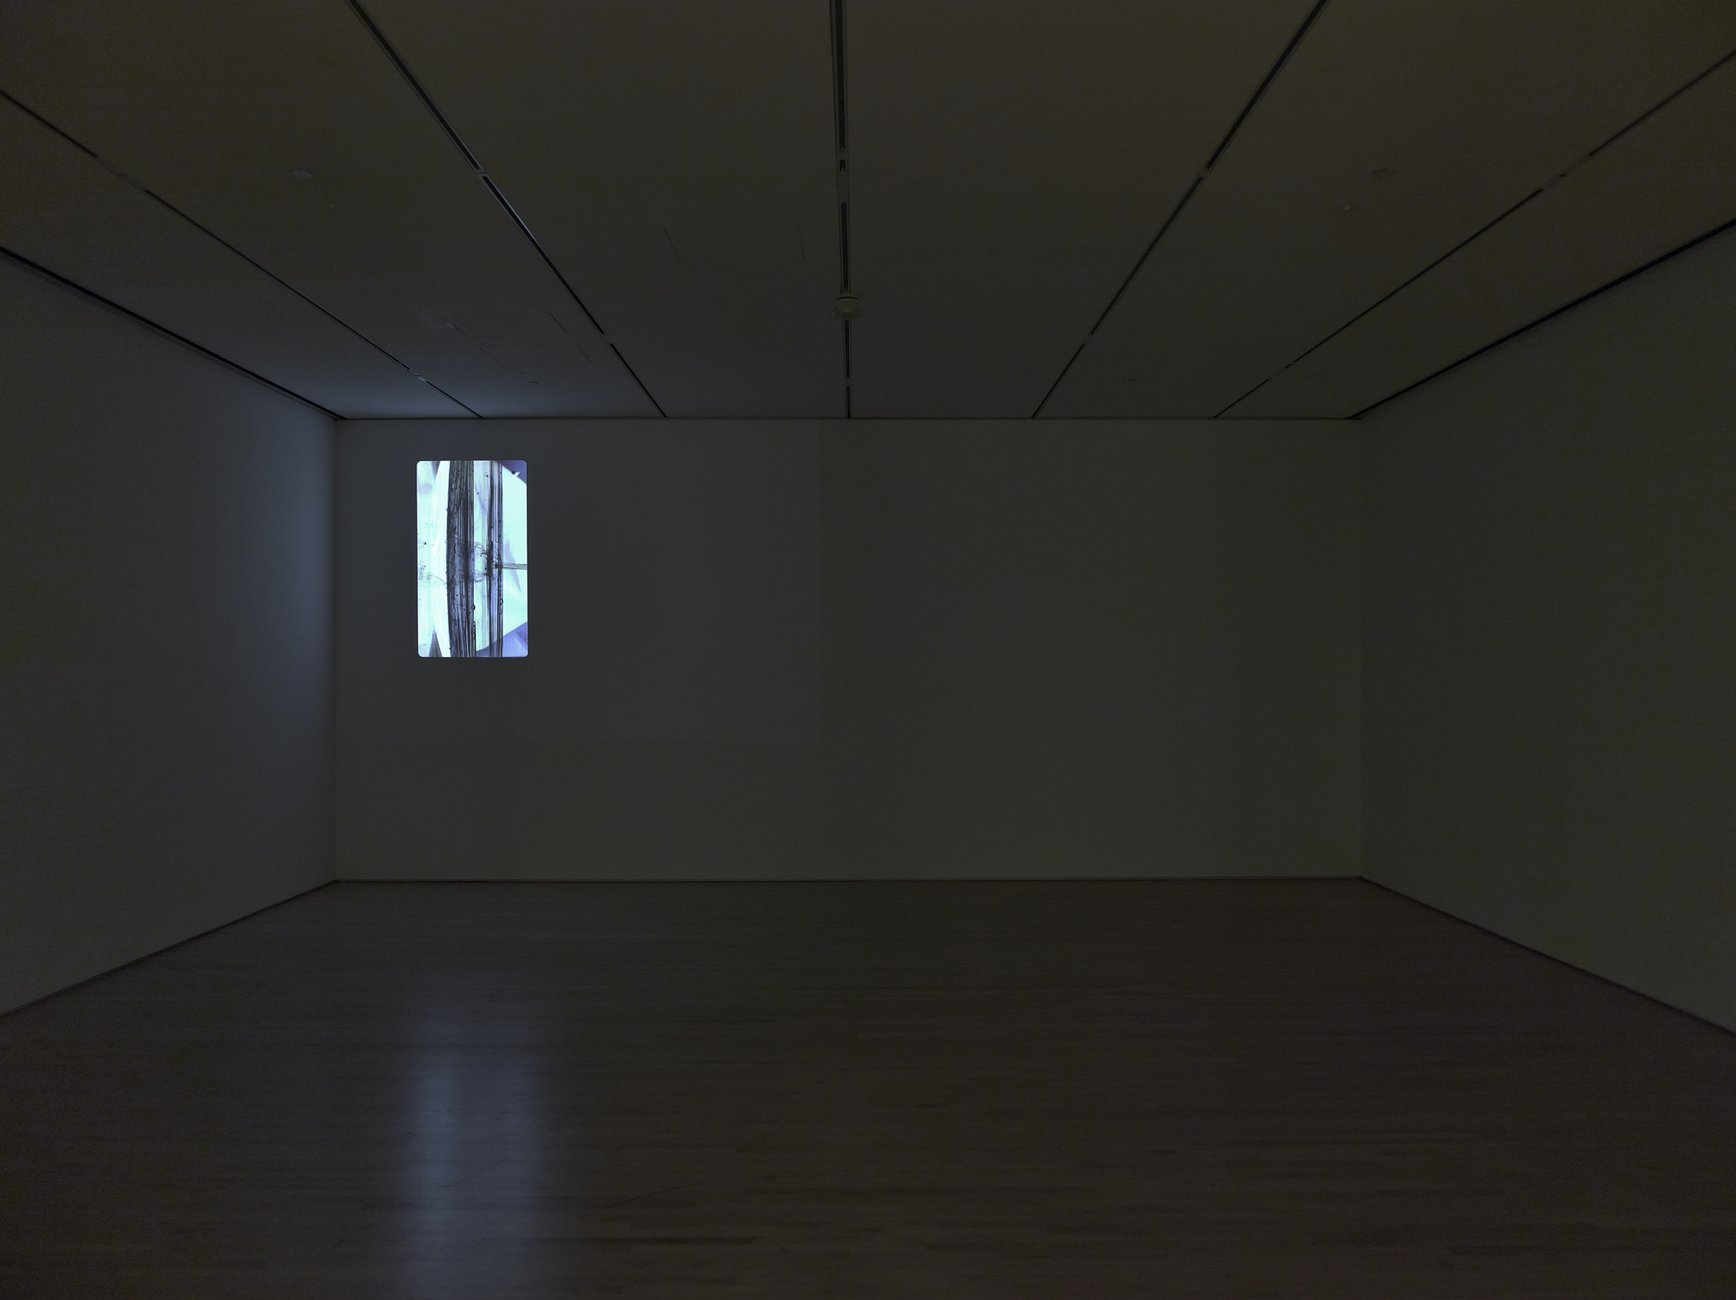 A dark room with an subtract projection on the wall.